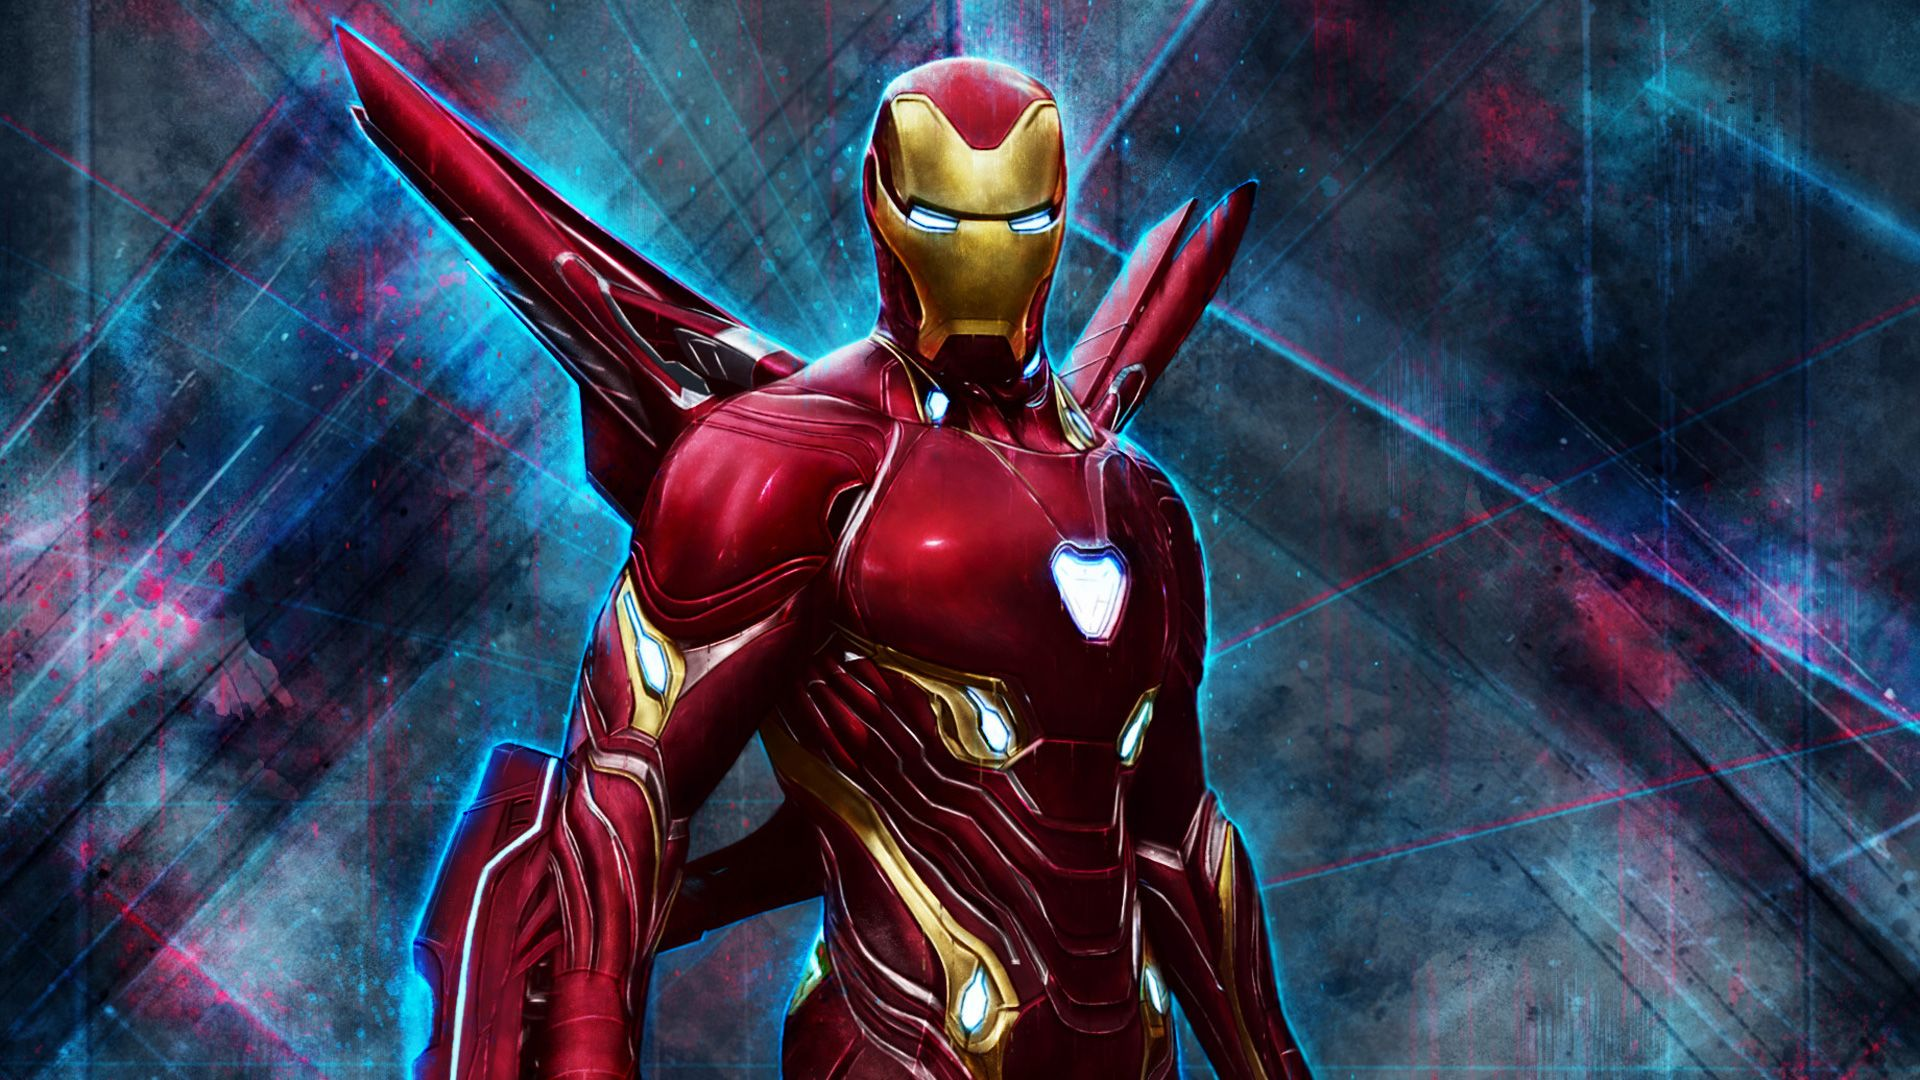 Top 10 Most Famous And Popular Superheroes Iron Man Wallpaper Iron Man Hd Wallpaper Iron Man Avengers